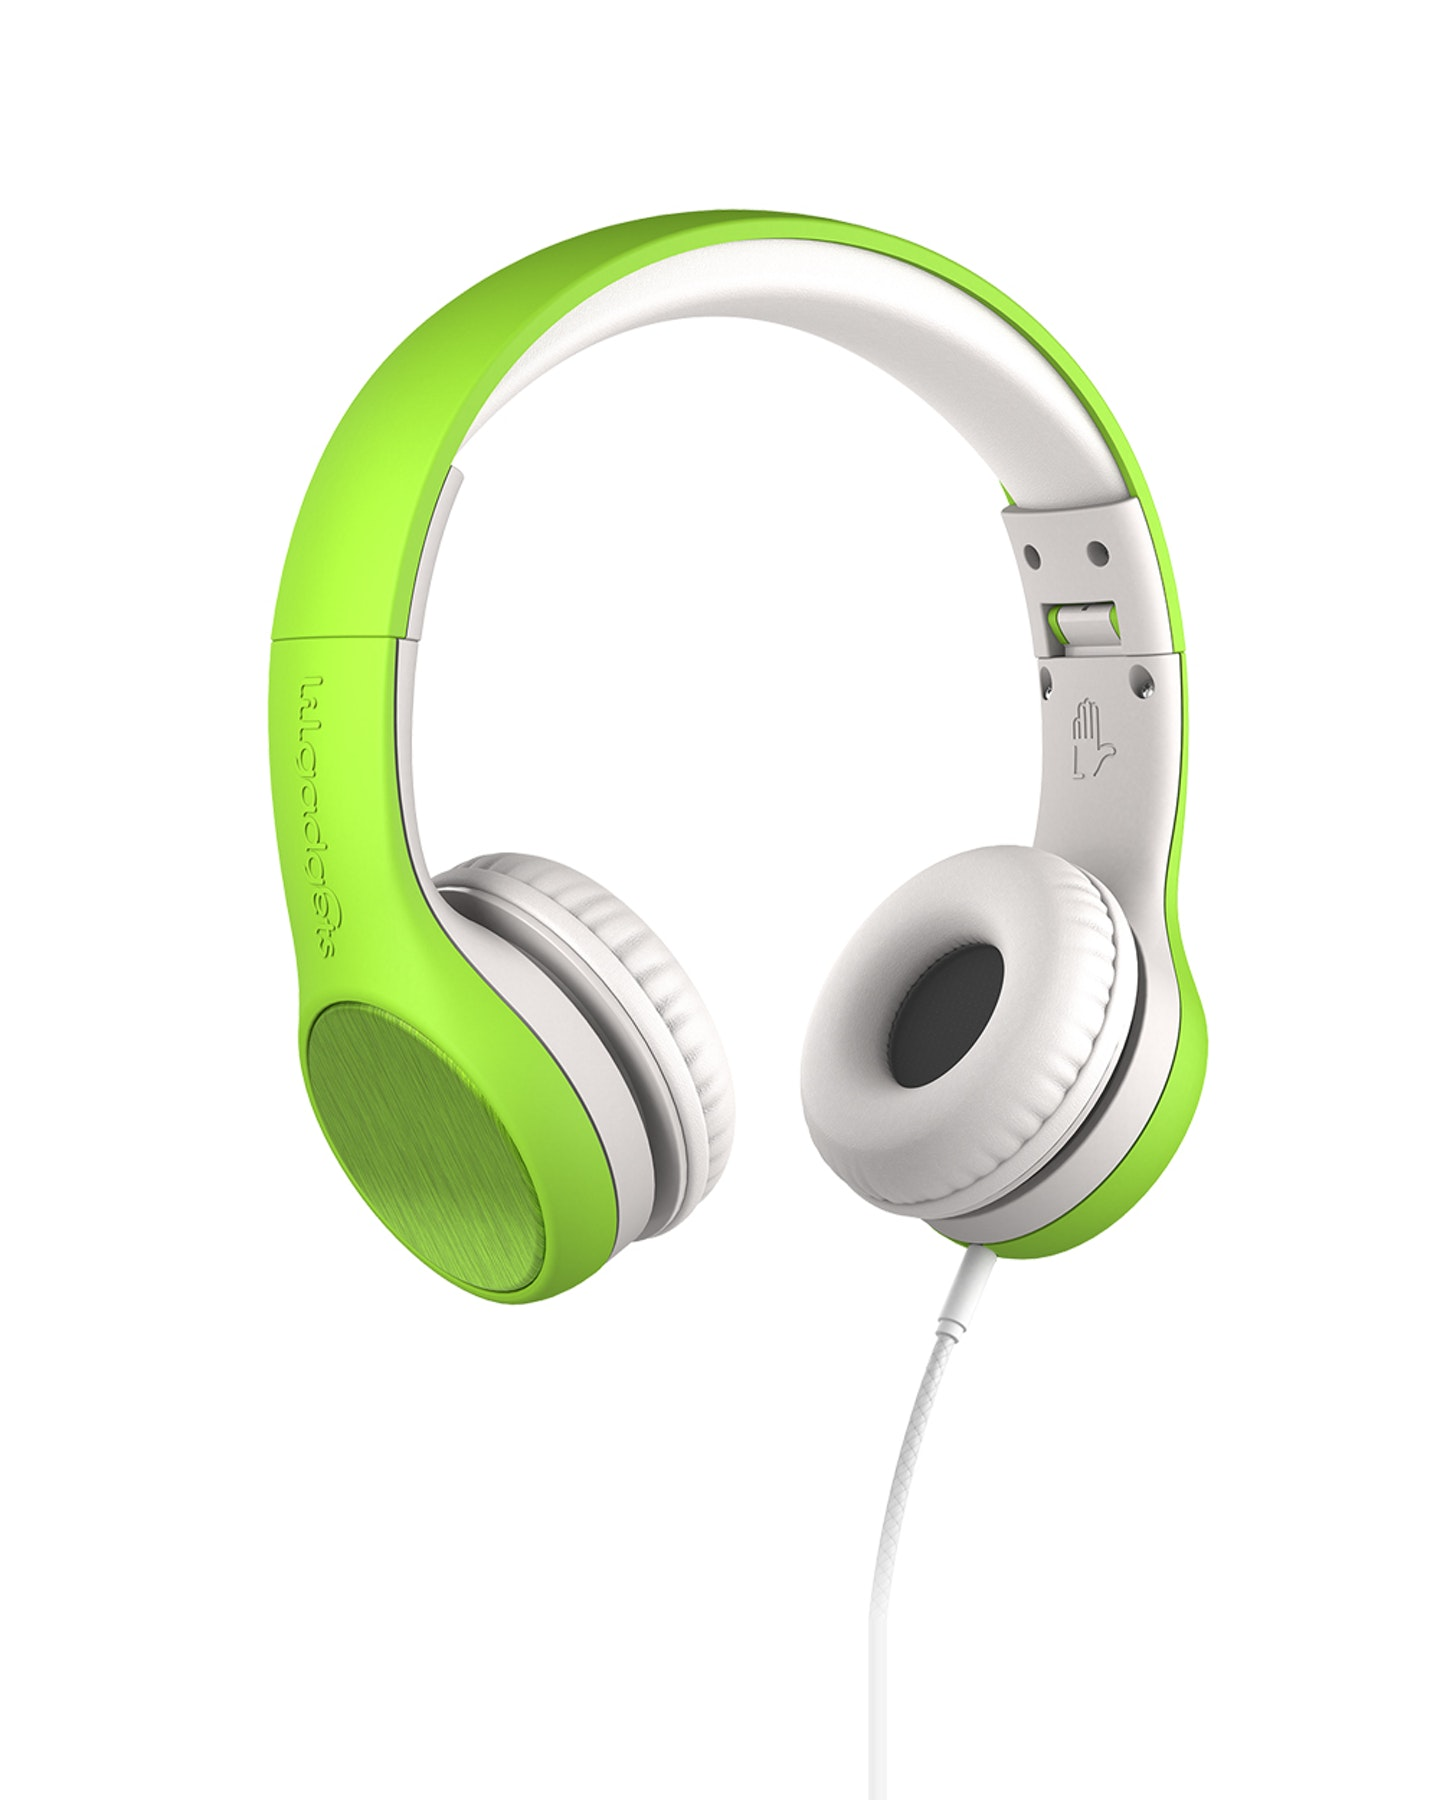 Lil Gadgets Connect+ Style Children'S Wired Headphones Green